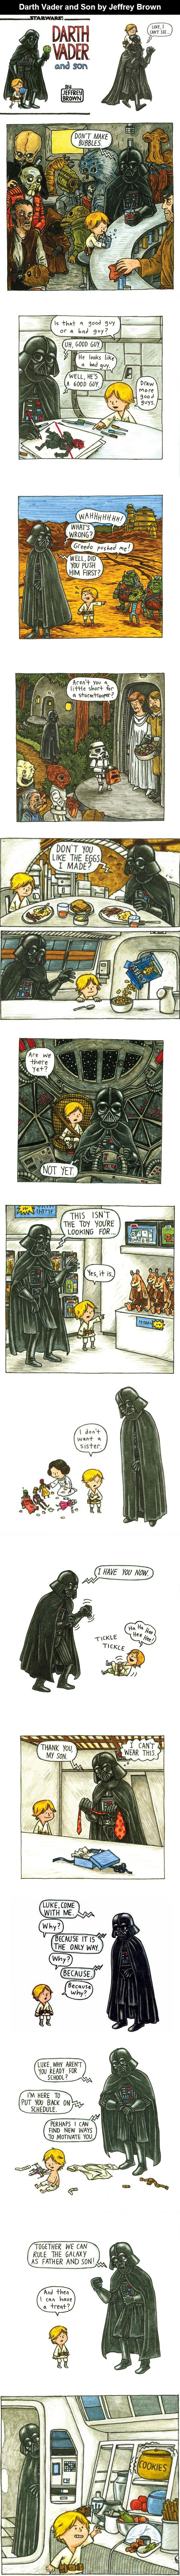 Darth Vader and Son #starwars